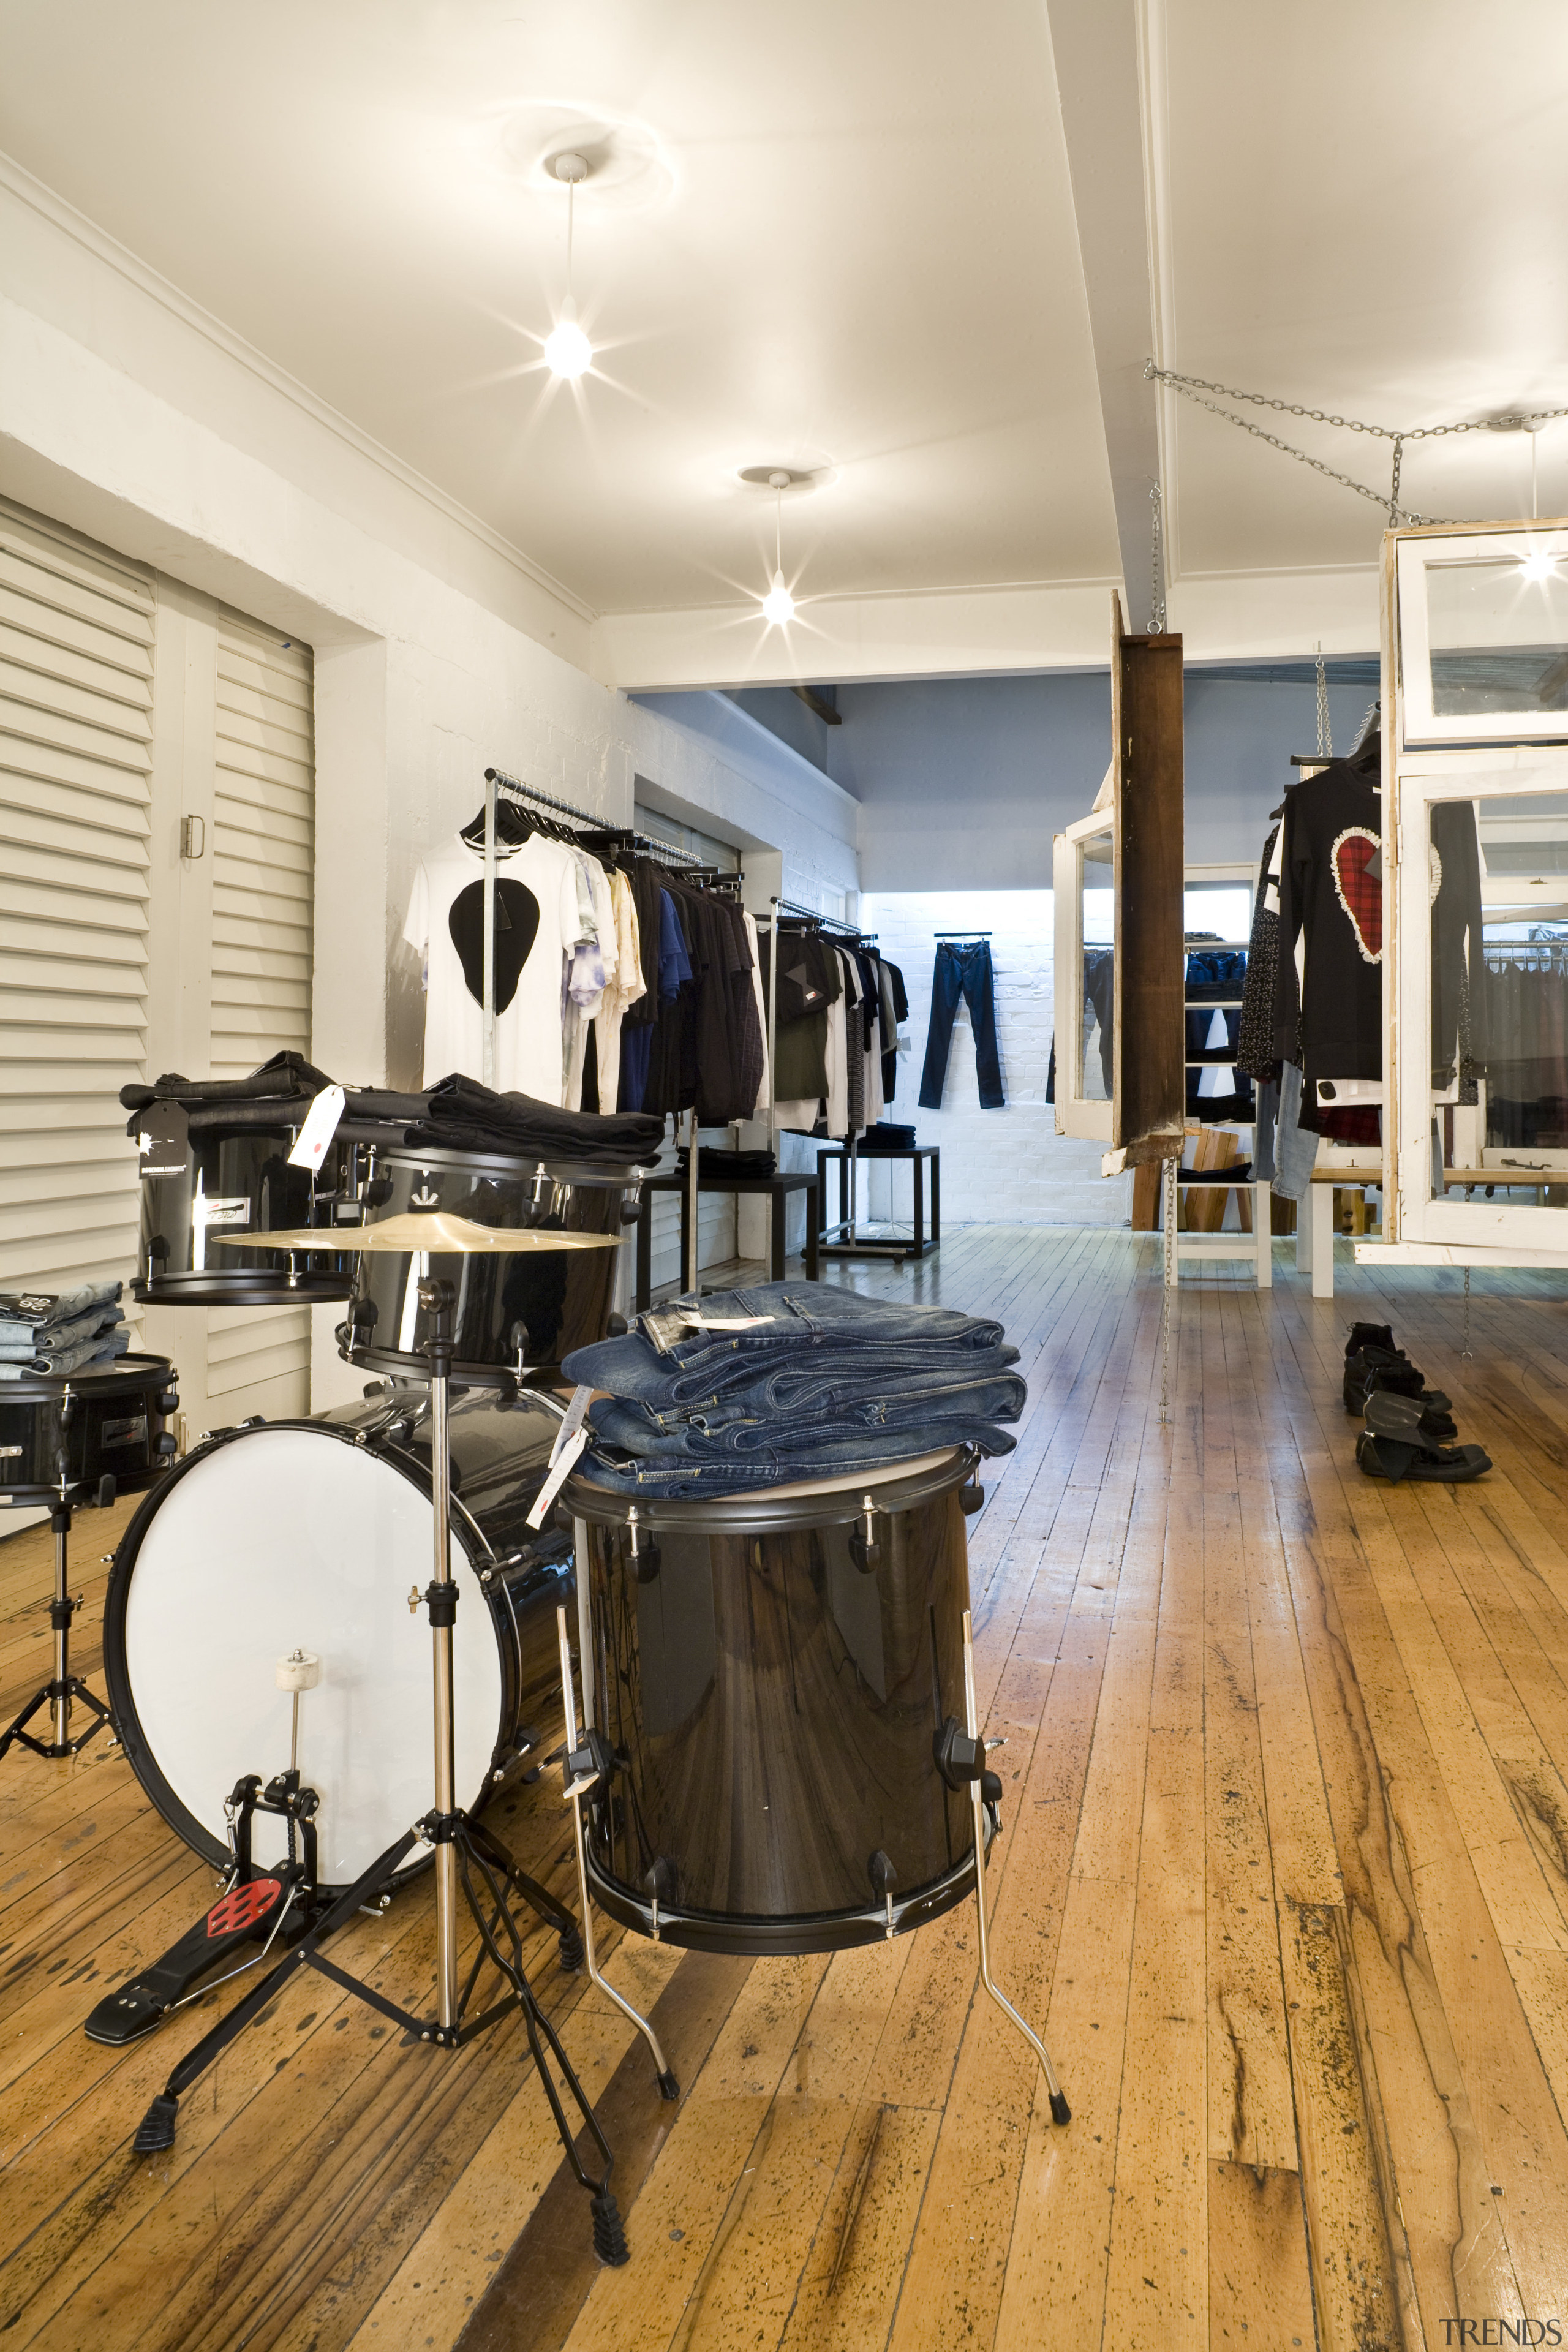 View of a drum kit which is used drum, drums, floor, flooring, hardwood, interior design, musical instrument, percussion, skin head percussion instrument, tom tom drum, wood flooring, white